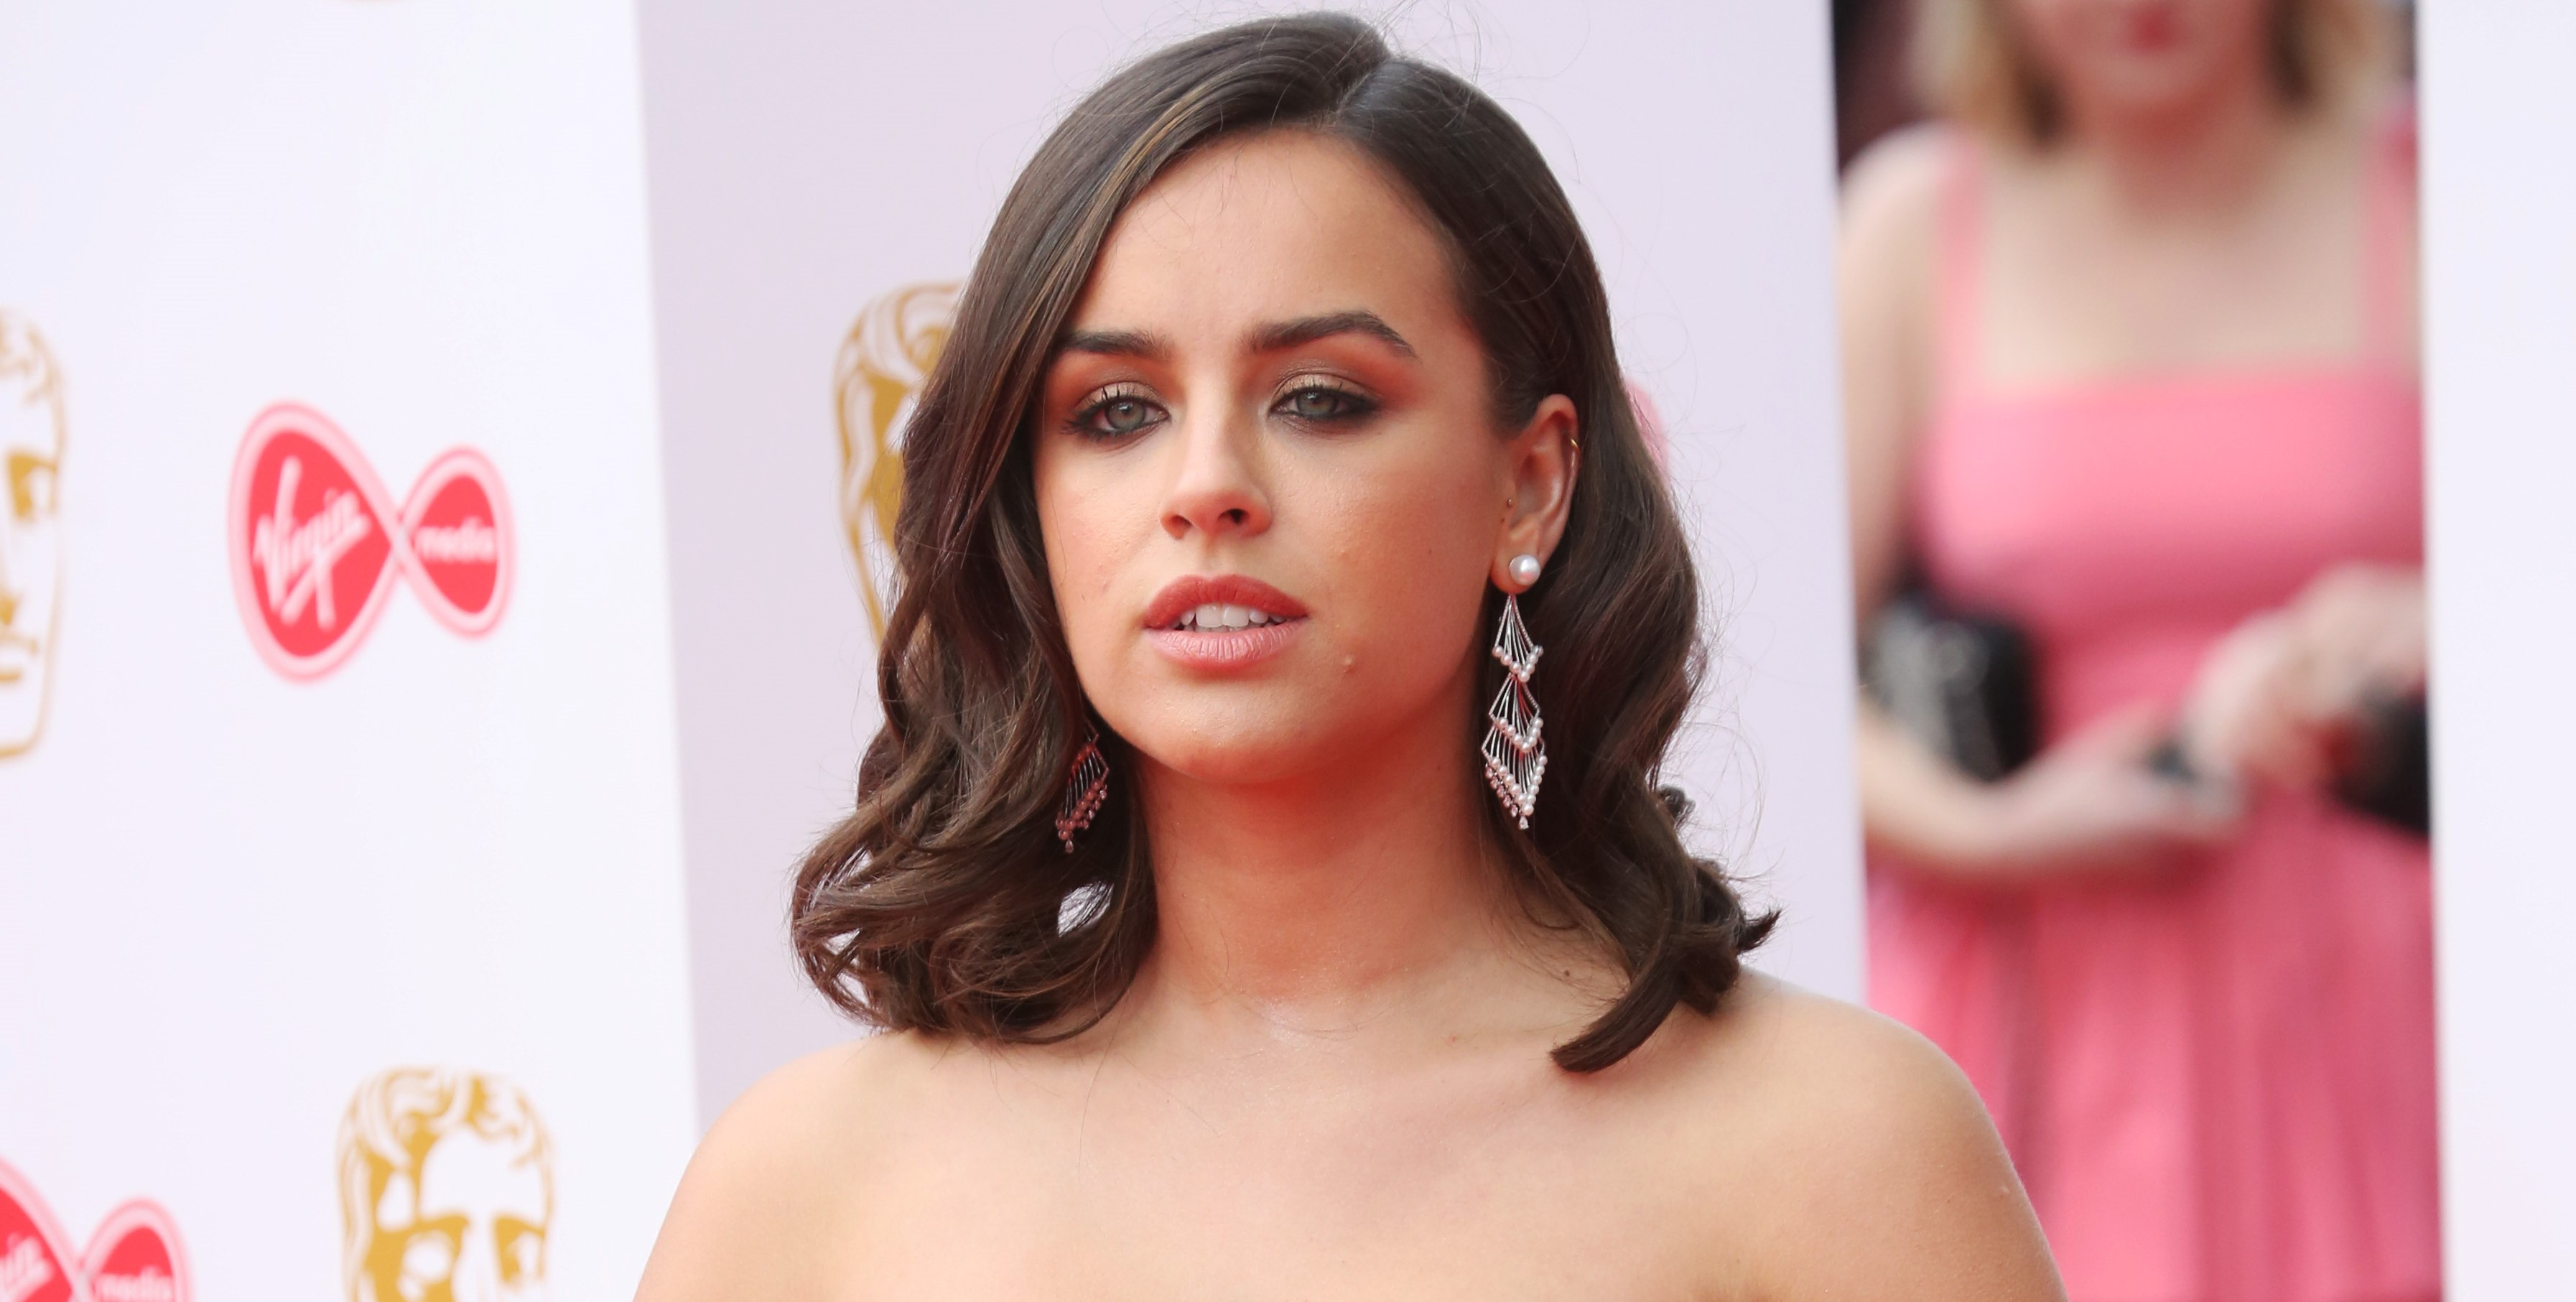 Georgia May Foote stuns fans as she shows off hair transformation